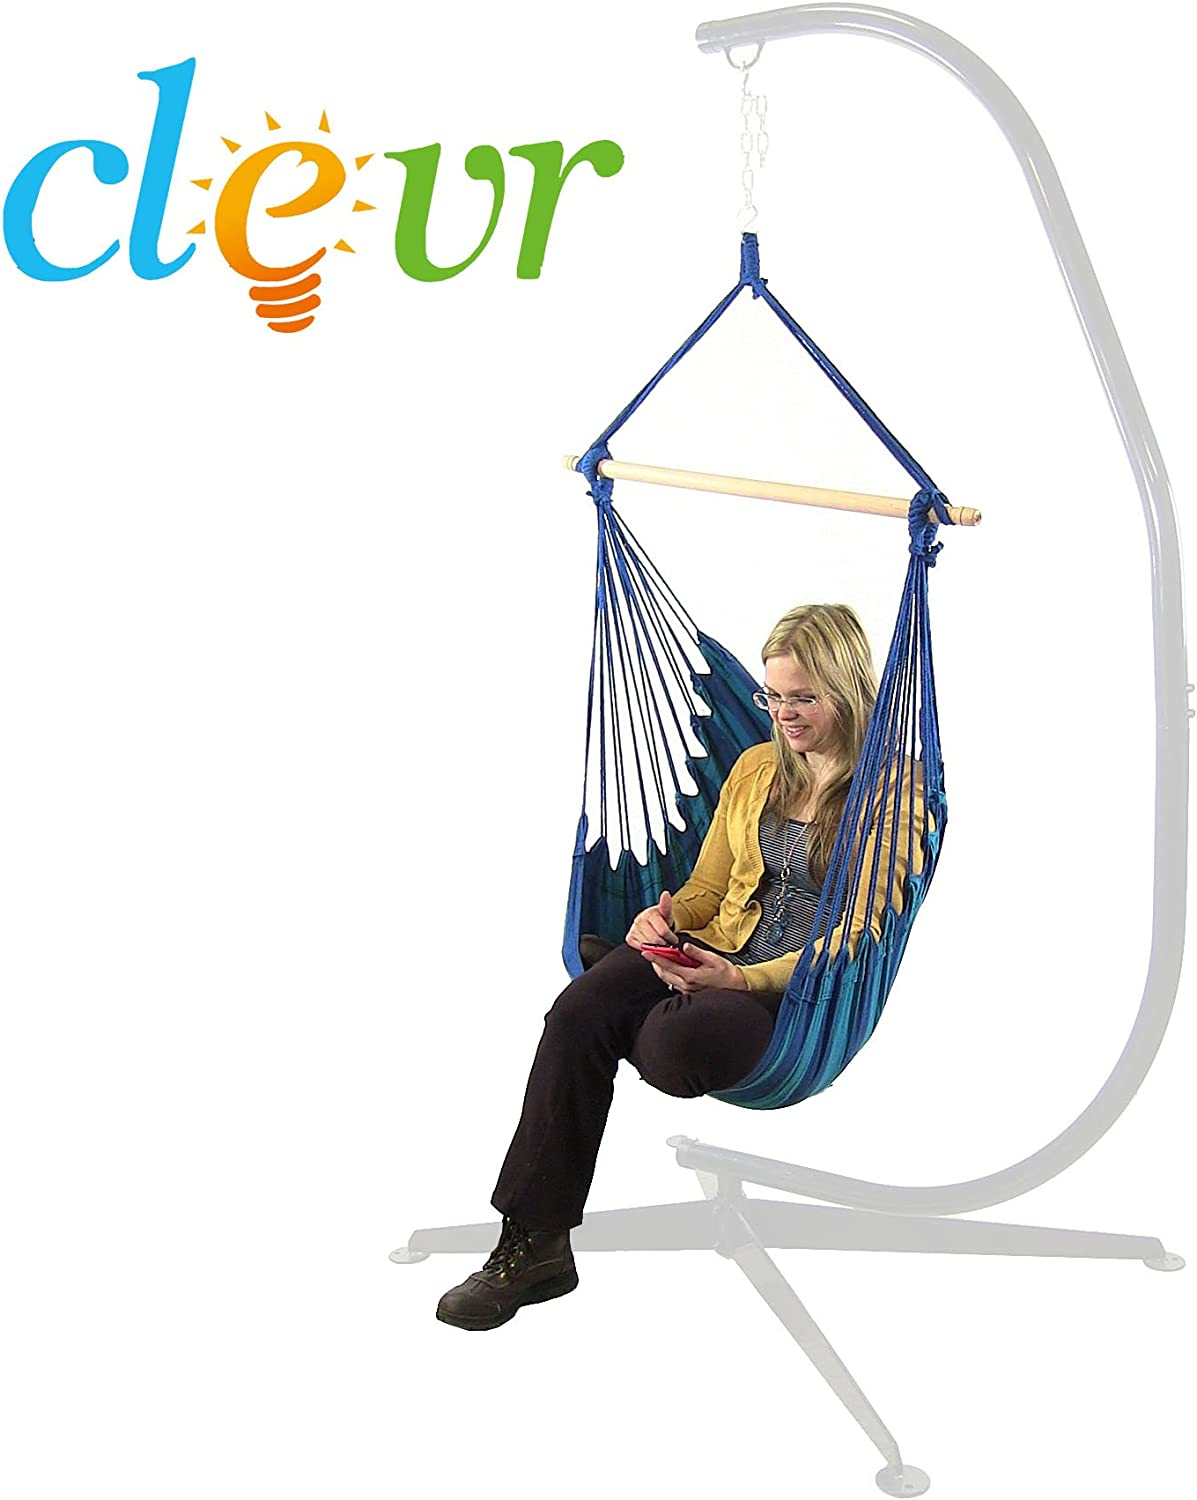 New Deluxe 38 Hammock Hanging Patio Tree Sky Swing Chair Outdoor Porch Lounge